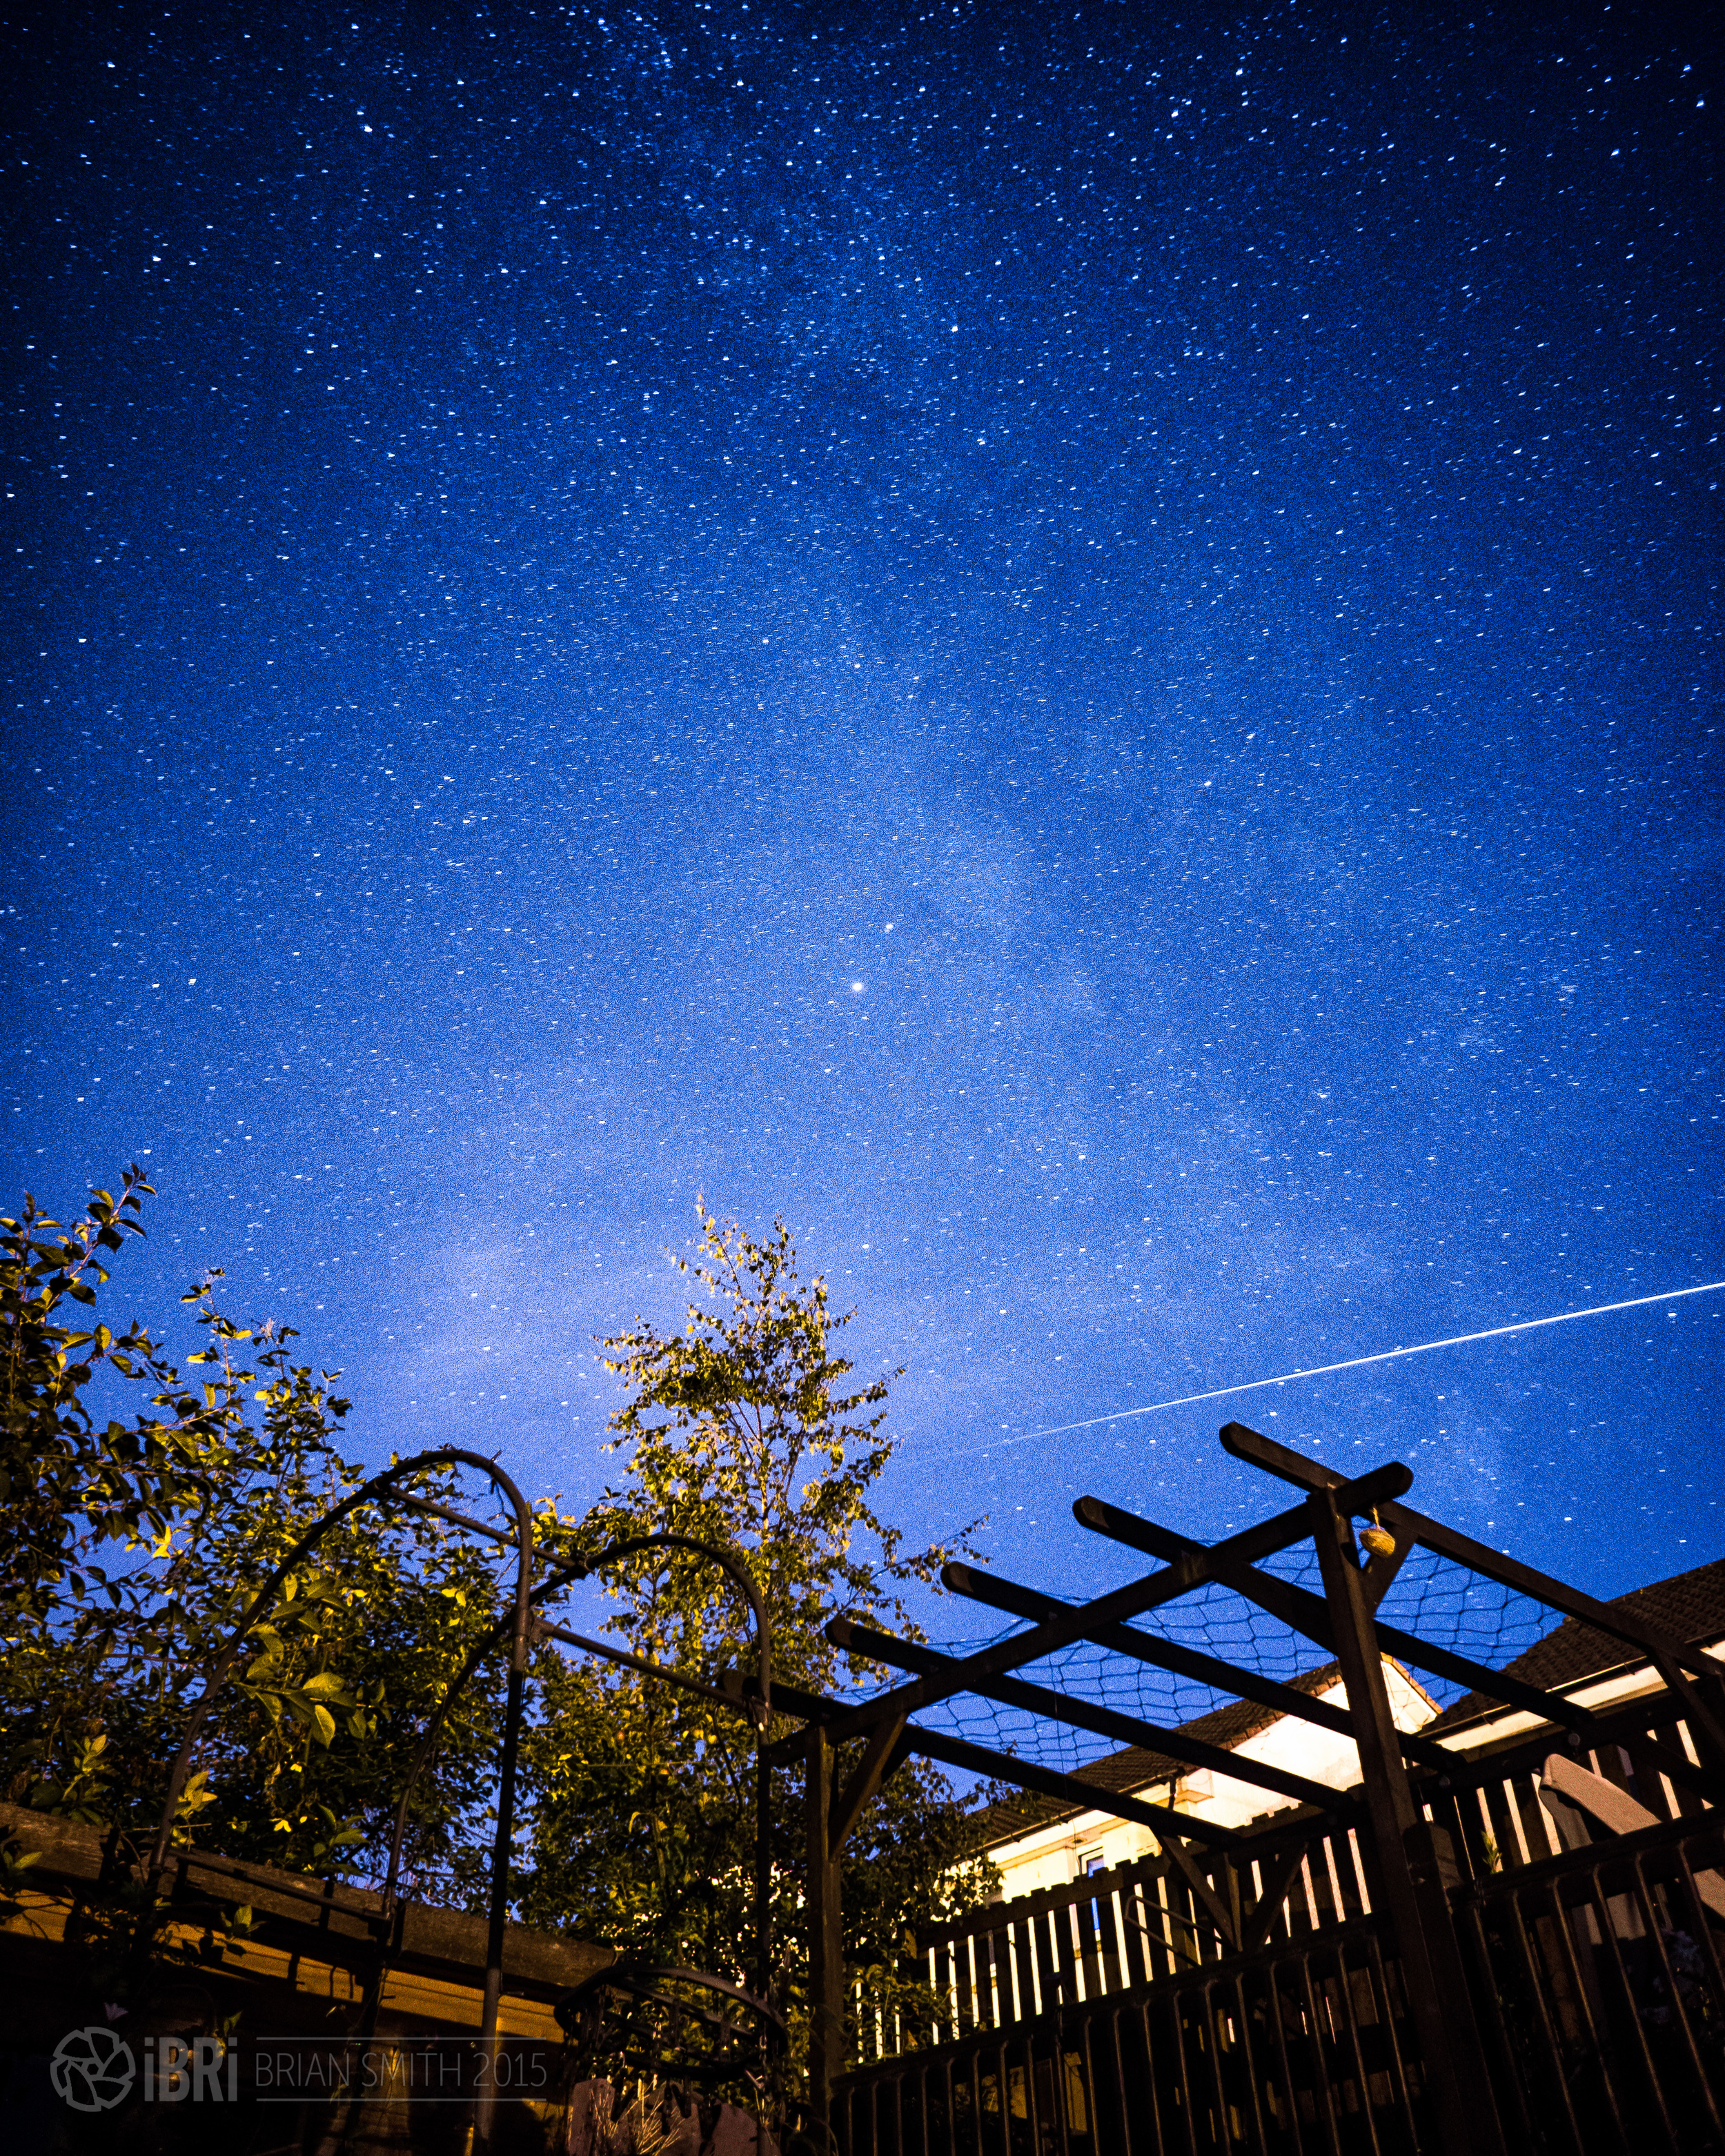 ISS Pass 2 - 7th August 2015